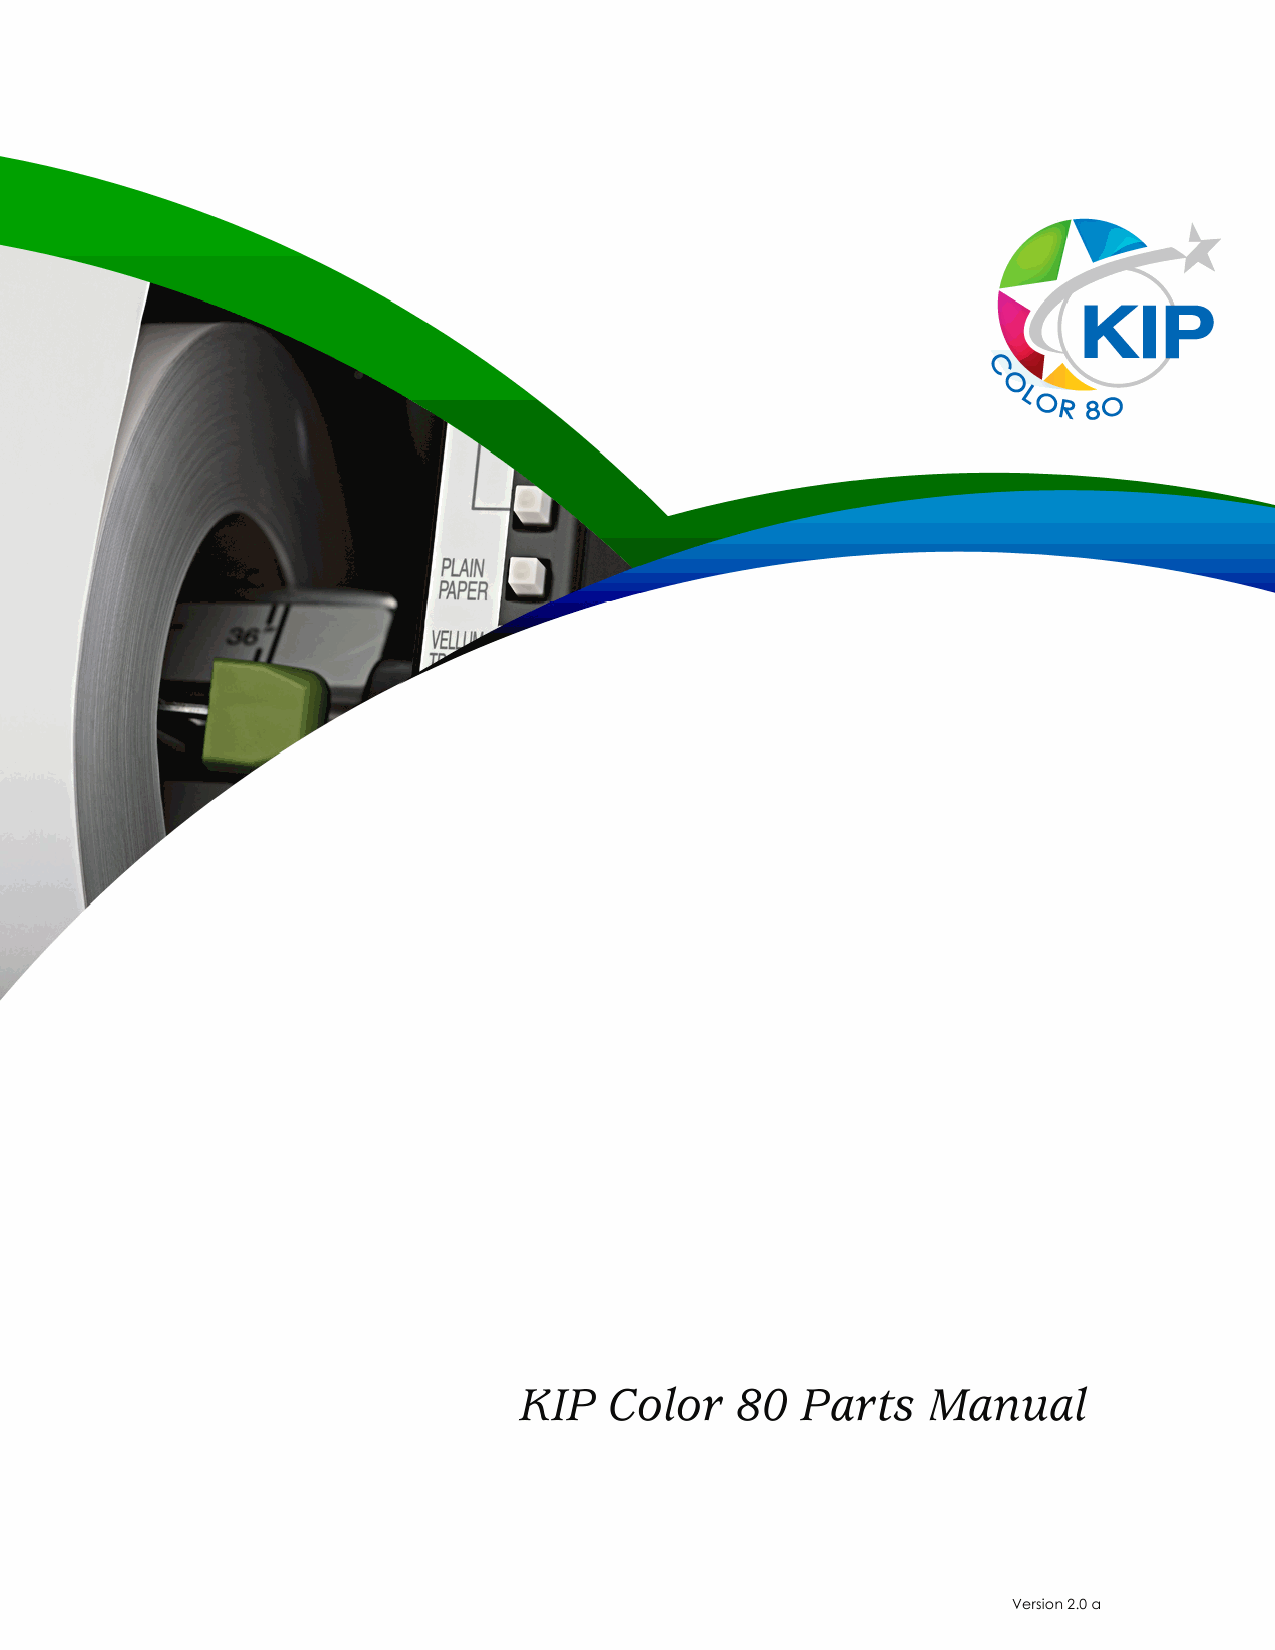 KIP Color 80 Parts Manual-1